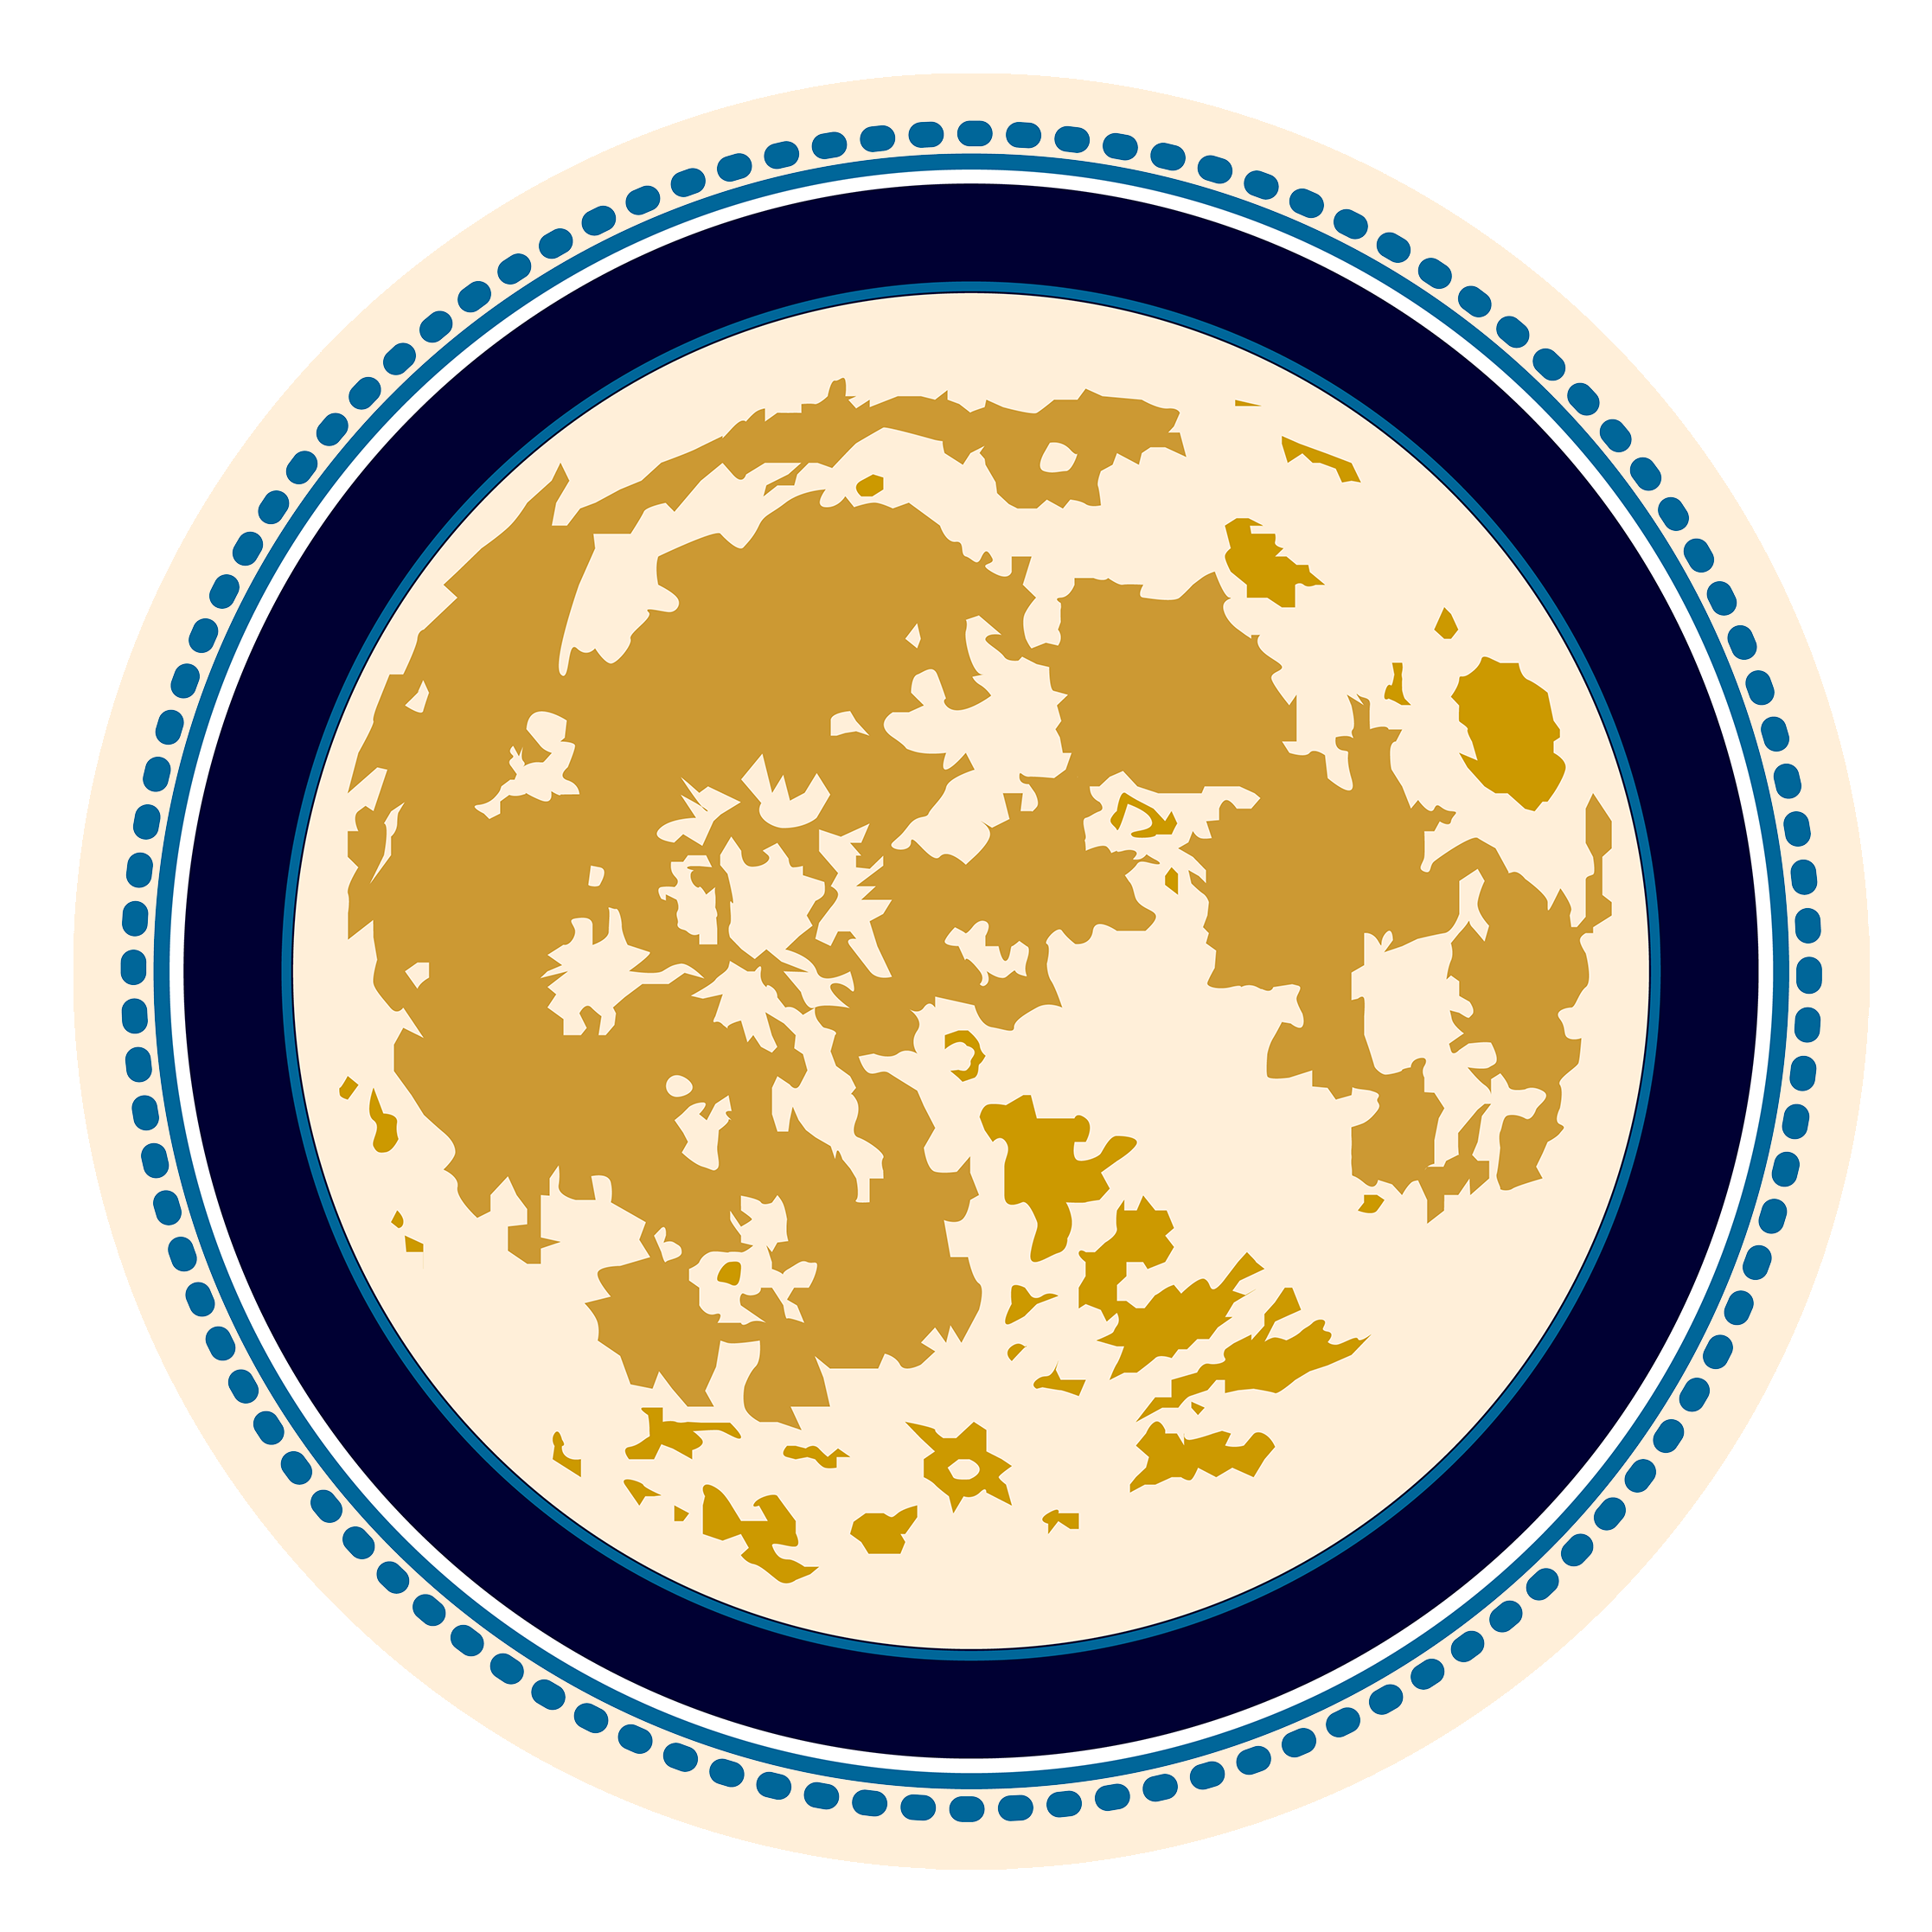 The moon is such an inspiration for me that I decided to make it the center of my logo. Each time I see it I am reminded to dream big ... to take action to make those dreams come alive. Moon Logo for Girard Illustration © 2016 by Kristen Girard.